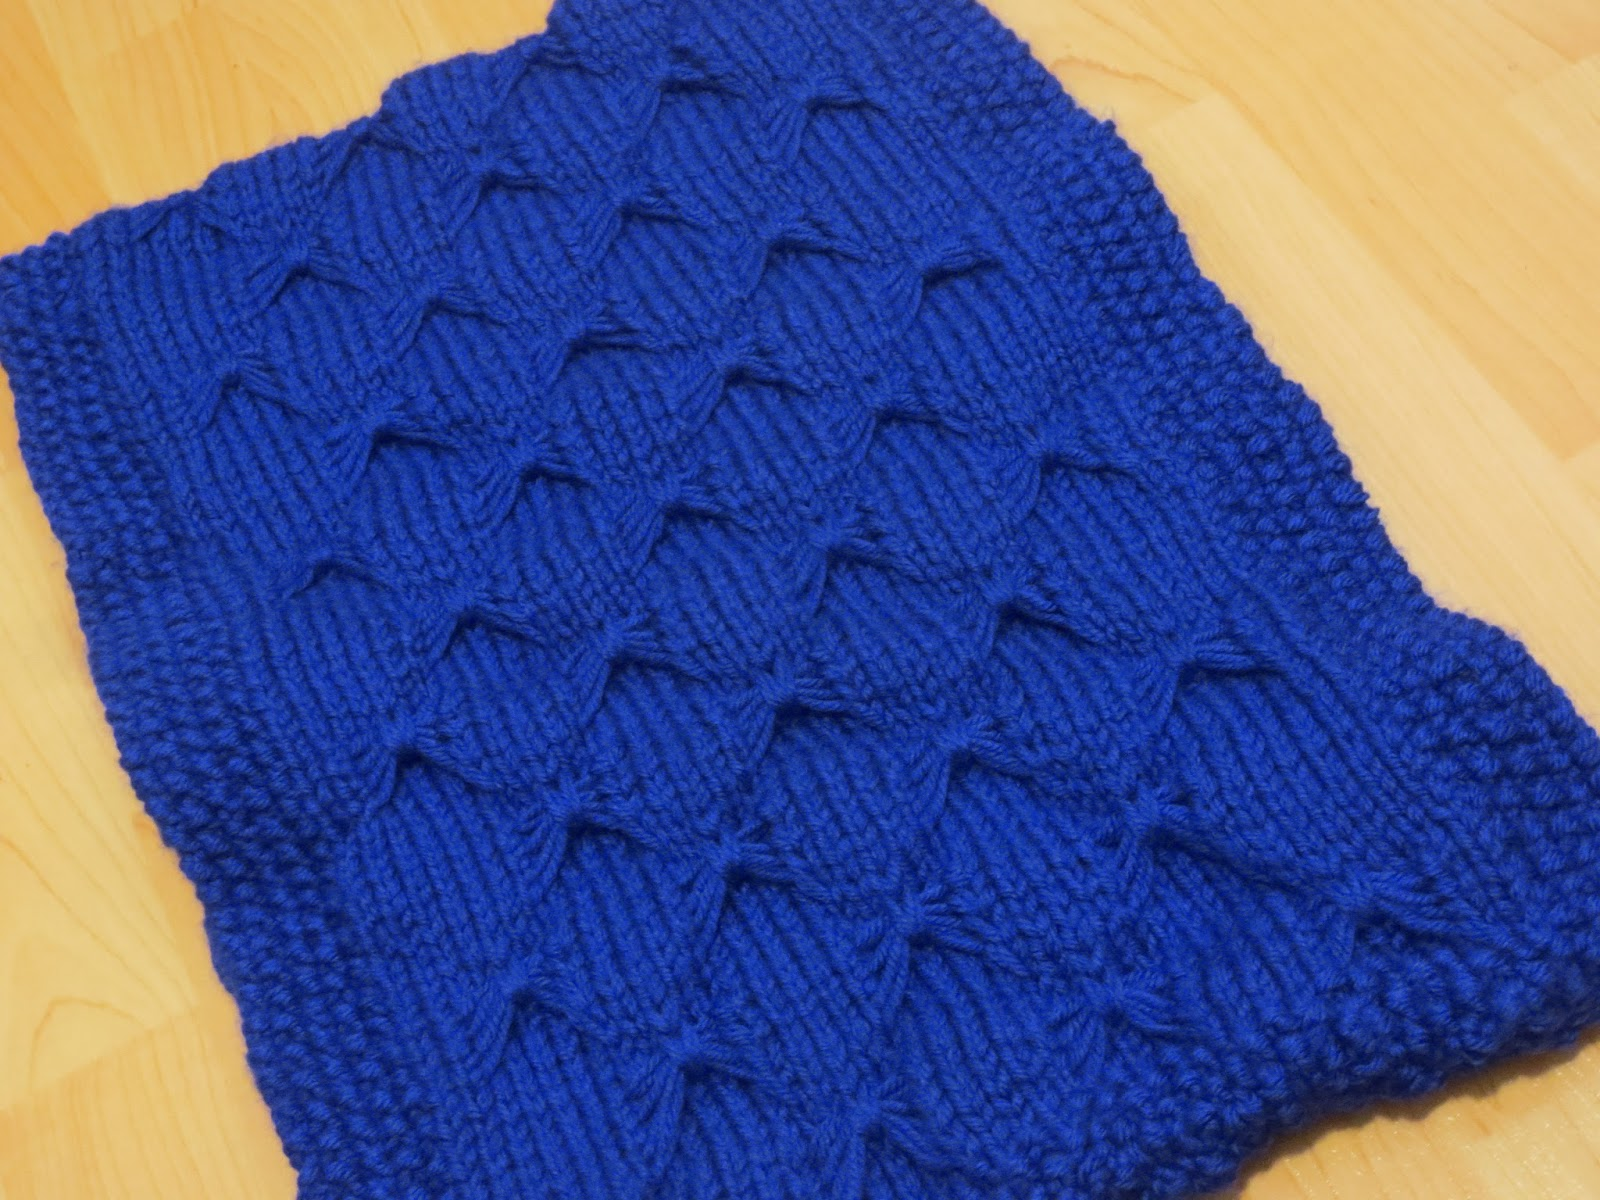 Butterfly Knitting Pattern : Project I.Am.Abbey: Butterfly Stitch - Royal Blue Cowl